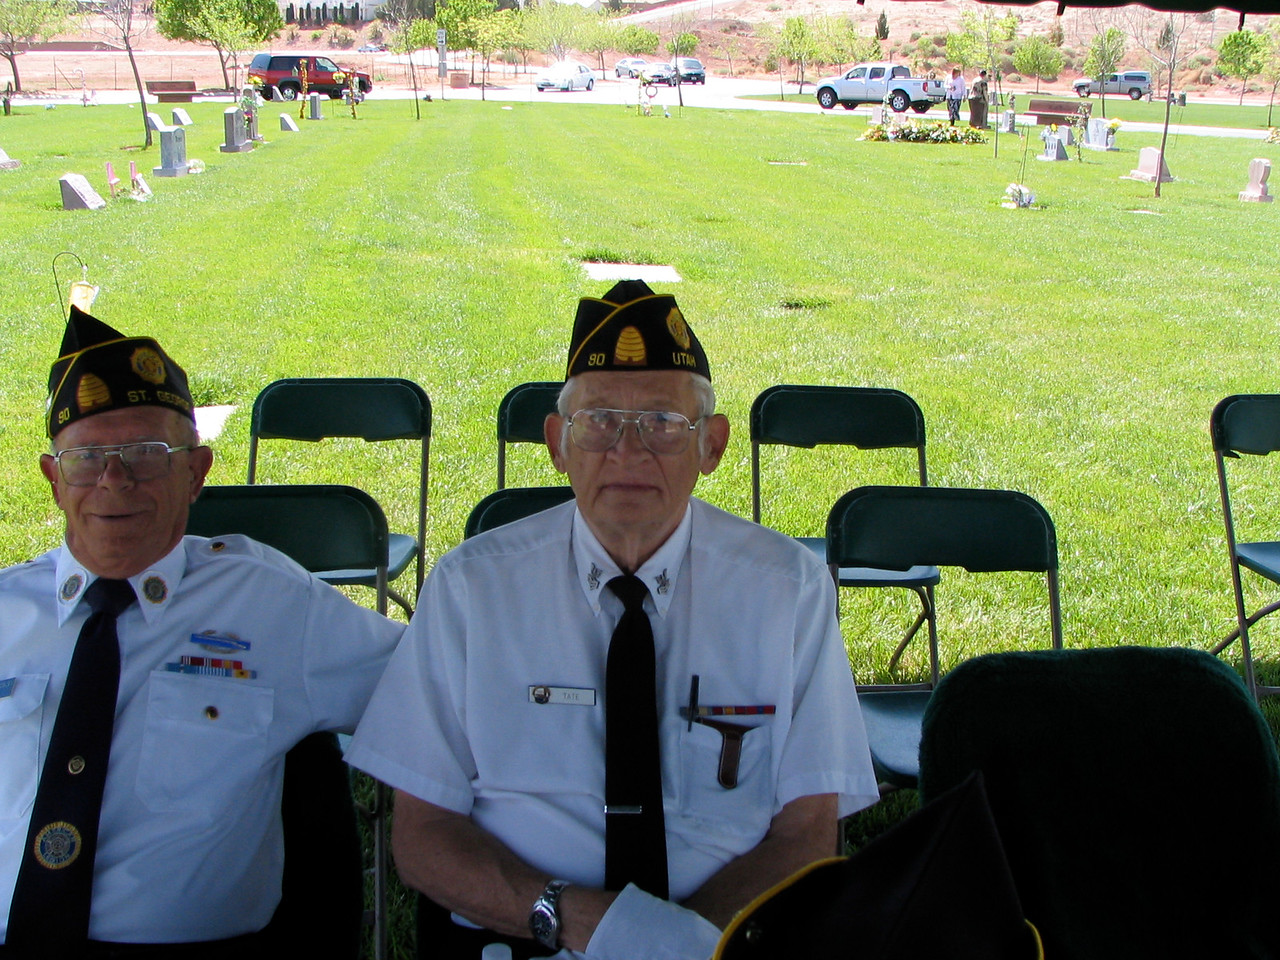 Lloyd Beardsley, Tooter, Honor Guard.   Leland Tate, Honor Guard.